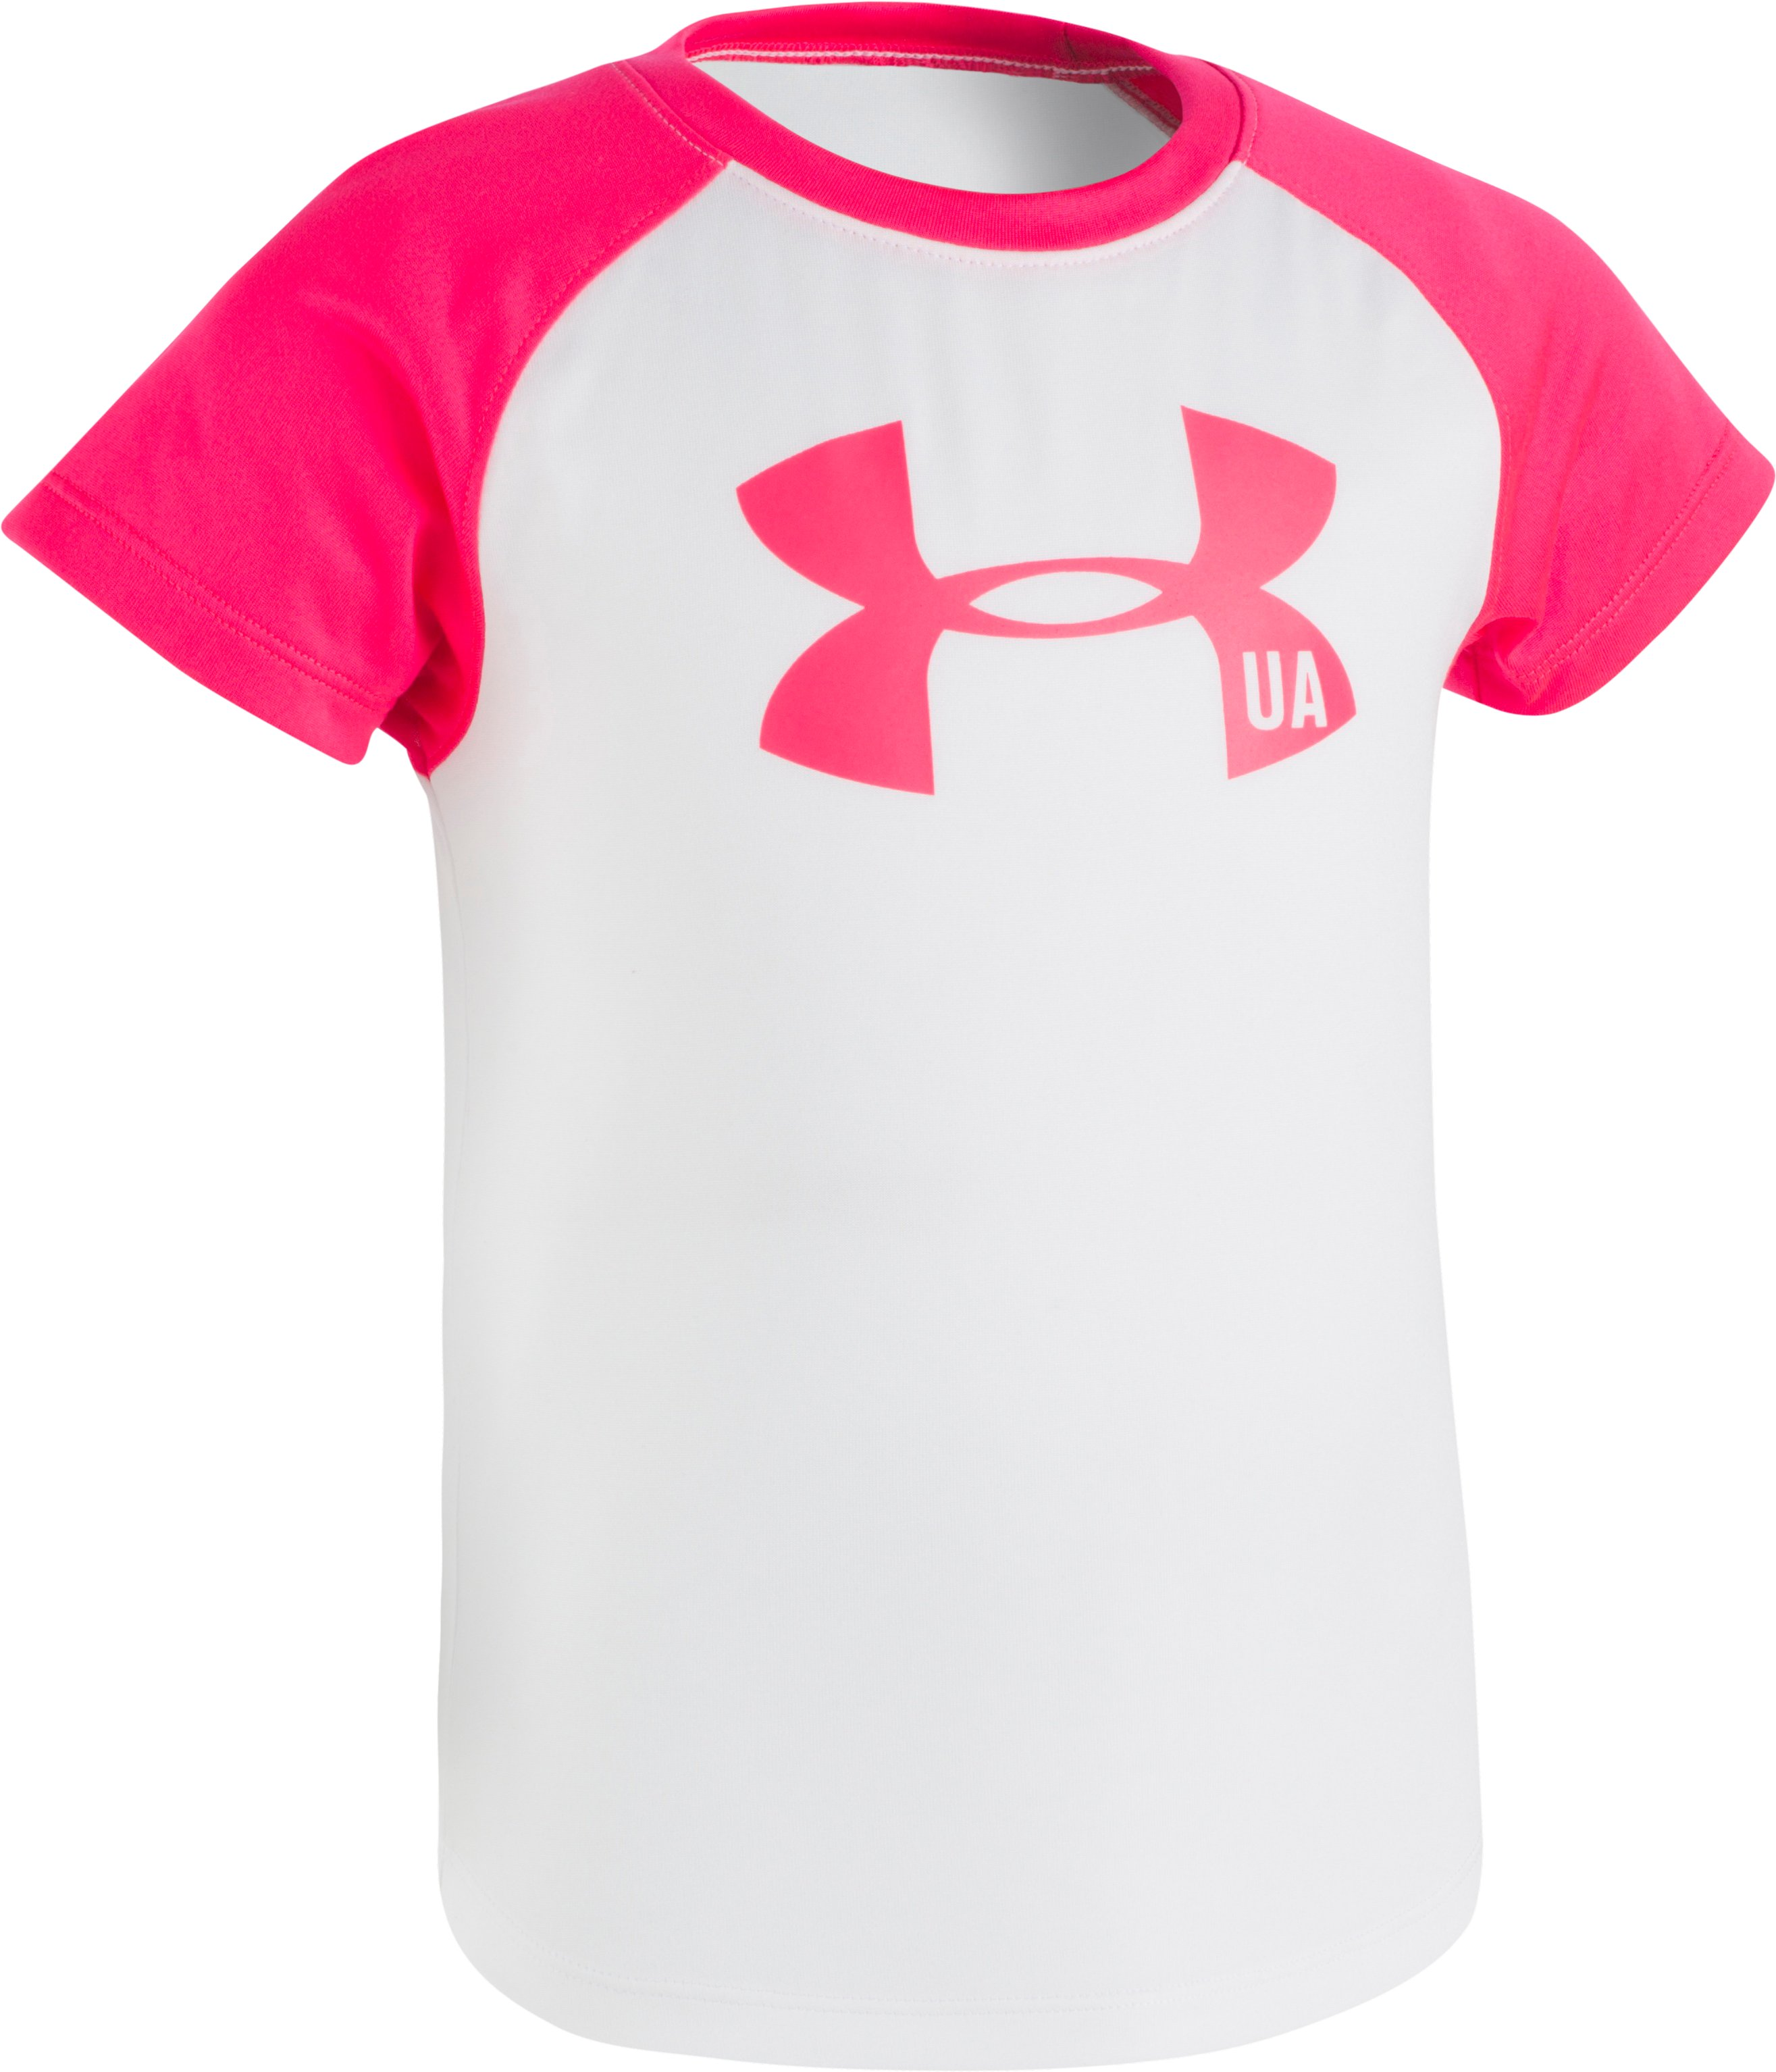 Girls' Pre-School UA Big Logo Raglan Short Sleeve Shirt, White